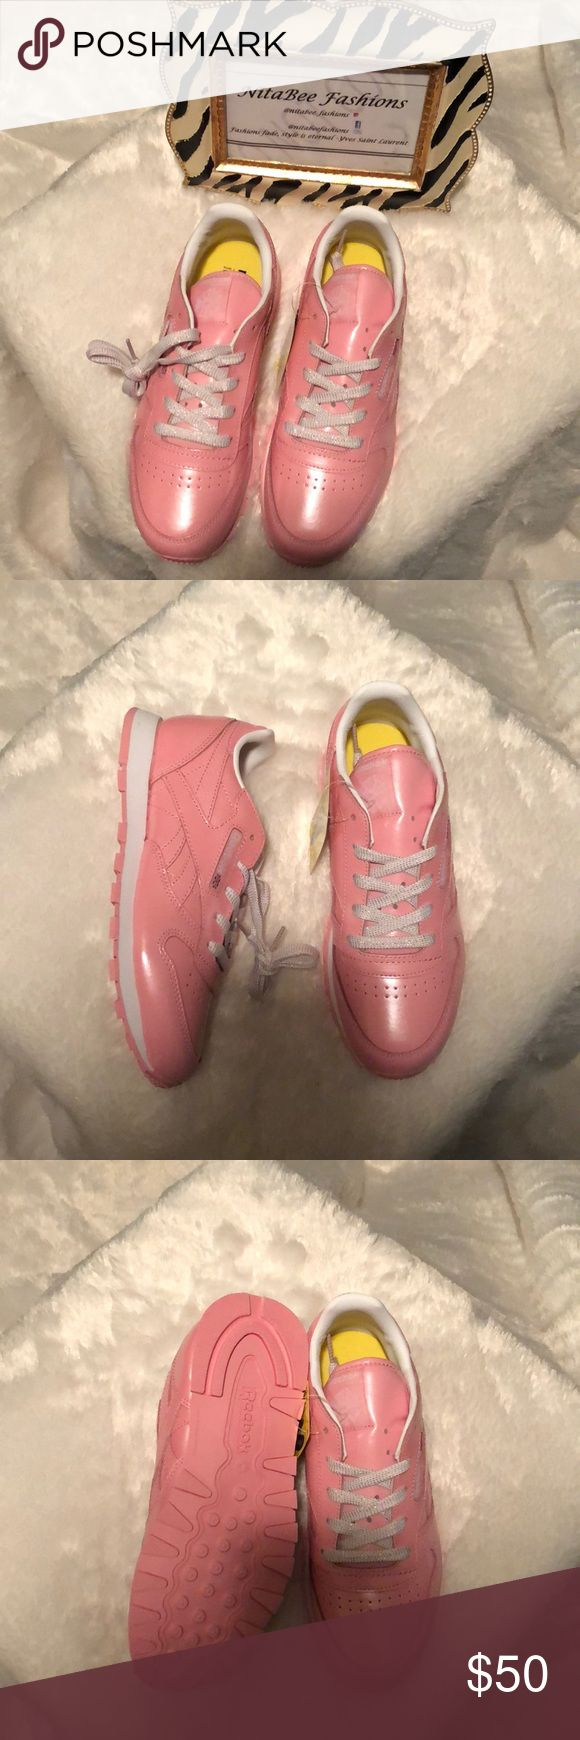 Reebok Classic Pink Leather Metallic Sneakers Sneakers are a girl's best friend and these pink Reebok Classic Leather trainers add international glam to anyones wardrobe Sz 3 | box missing top| New never worn | Reebok Shoes Sneakers